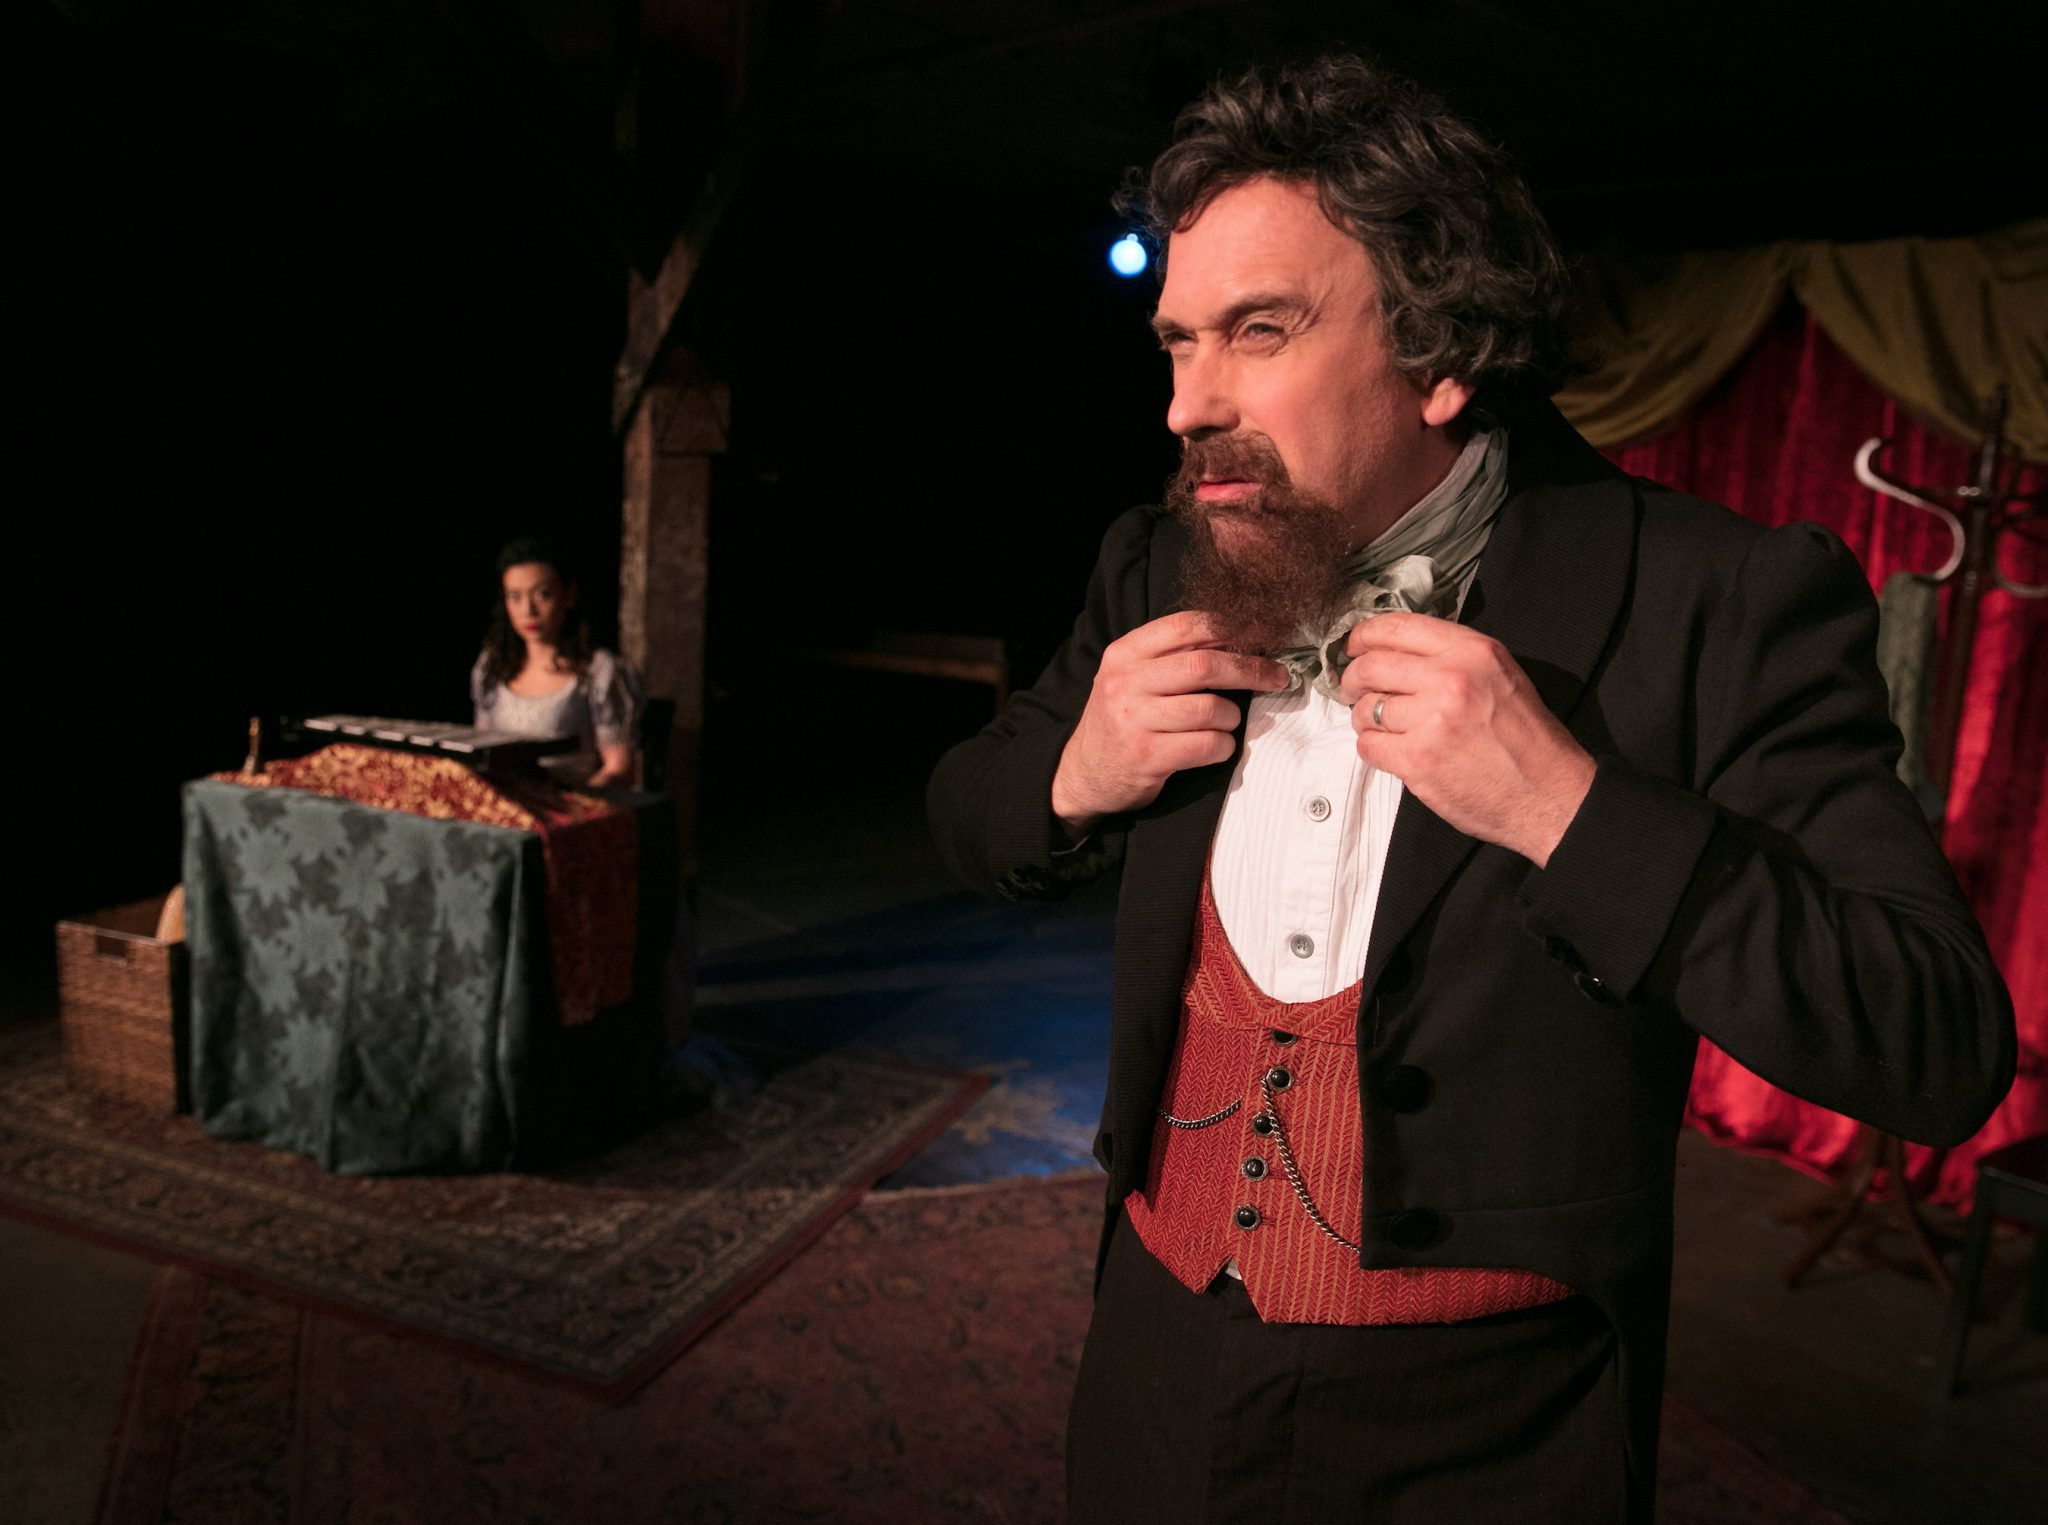 A Christmas Carol with Charles Dickens